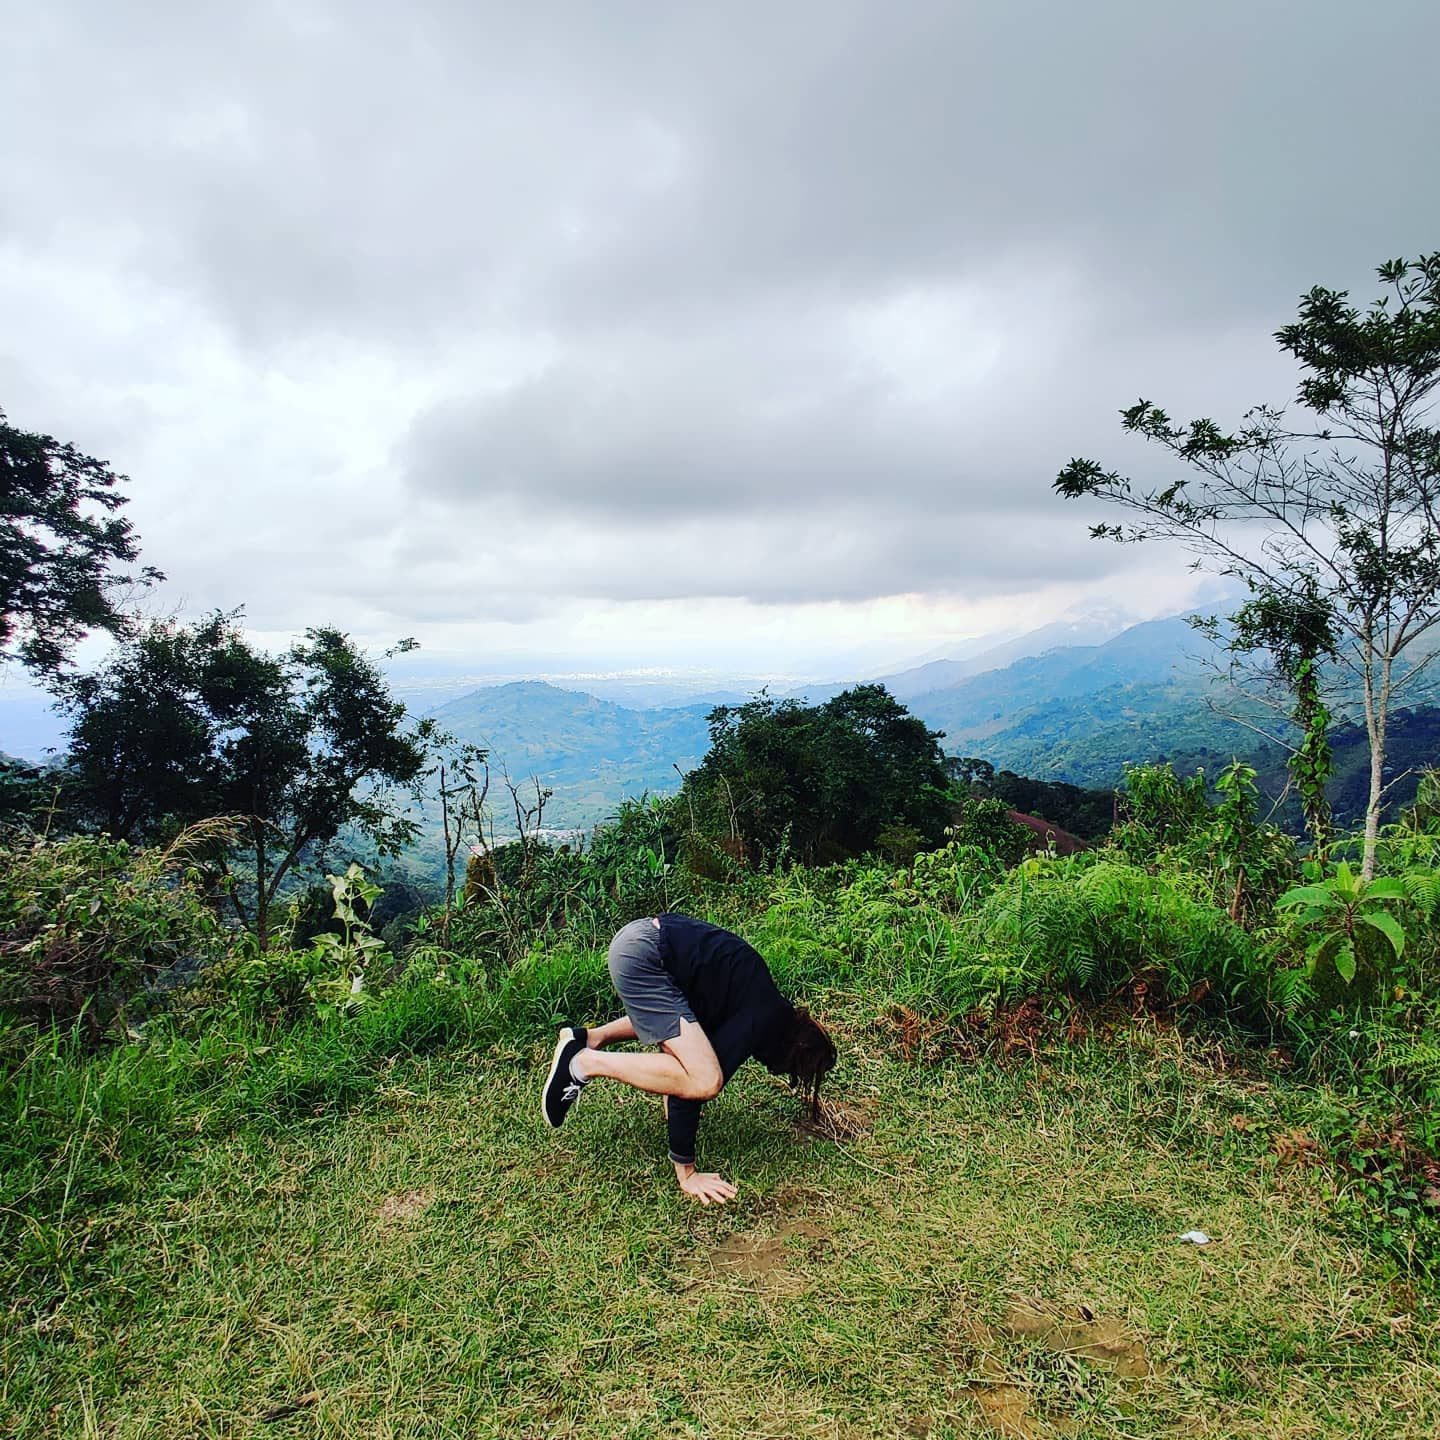 #crowpose #yoga and #views #Breathe ...  relax and  gratitude  #calesthenics #gympark #workout #gym #homegym #gardenworkout #adaptedworkout #adaptedgym  ️️️️ #Bohemia gives cards for a different path..  🇨🇴🇨🇴🇨🇴 Today Colombia calling Peace love & #adventures from #Colombia #travel #wanderlust #globetrotting #globetrekker #digitalnomads  🏞️⛰️ #mountain #mountainview #nature #viewpoint #viewpoint #vistas #vista #landscape #rollinghills #countryside #escapethecity  ⛰️🏔️🏞️ Options that are easy and almost free, but not journeyless. The universe's largest playground. Infinite possible paths. Come walk with me...